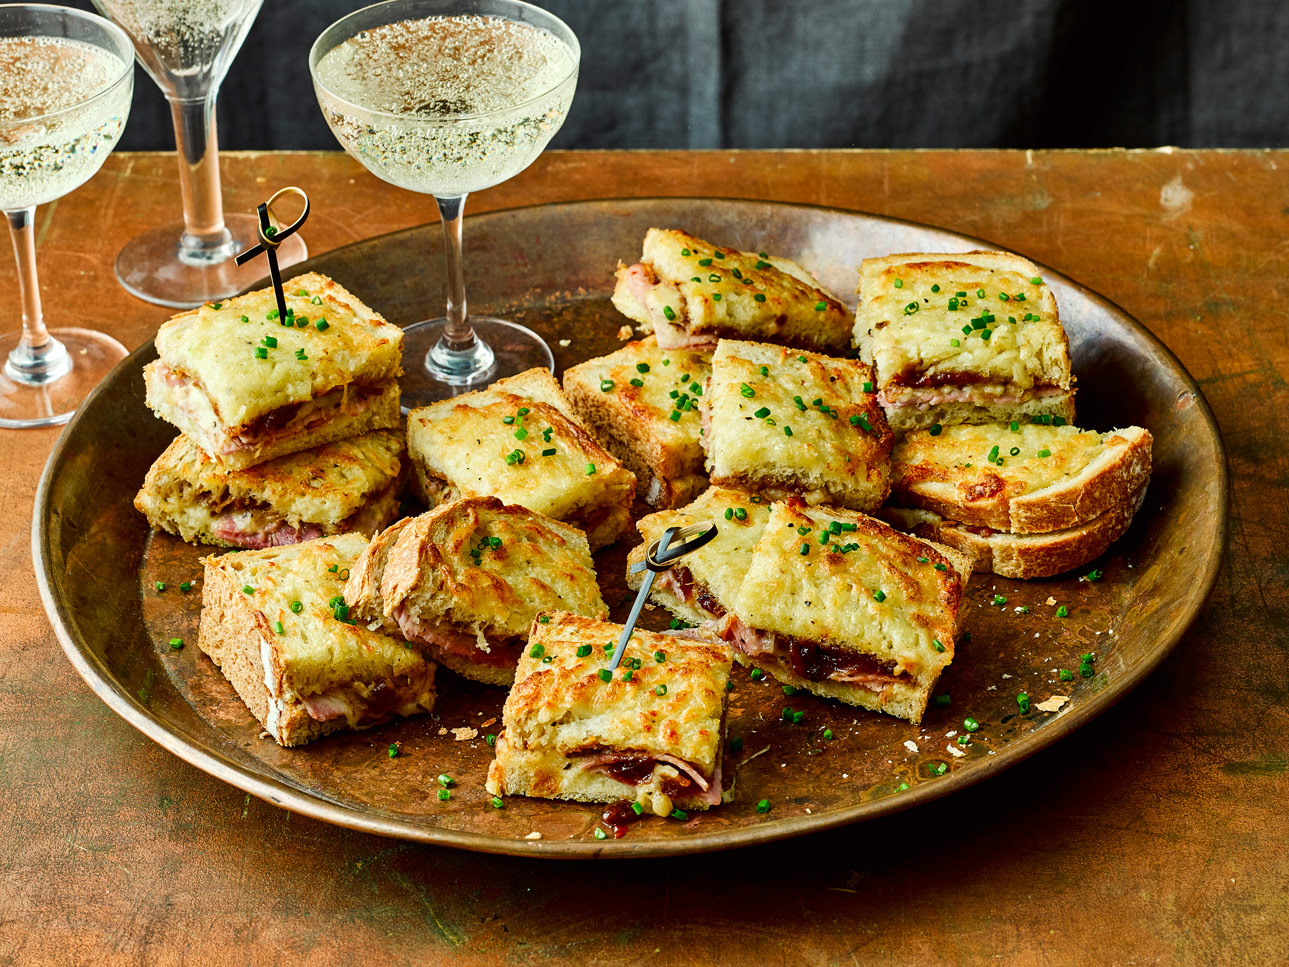 Party food recipes yours party food recipes forumfinder Choice Image